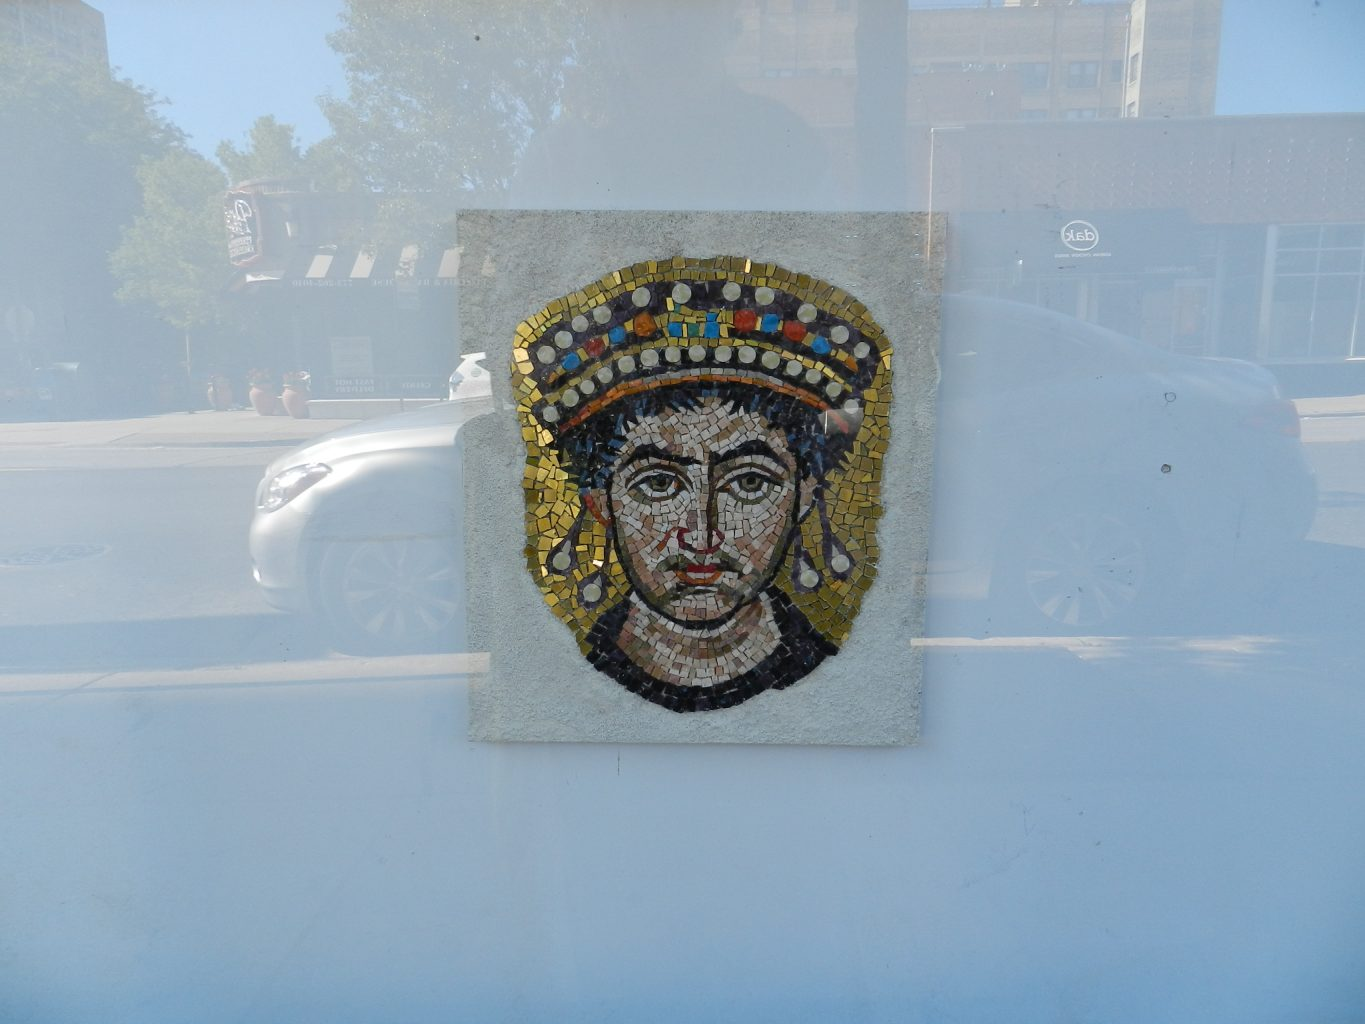 The Emperor Justinian at the Chicago Mosaic School